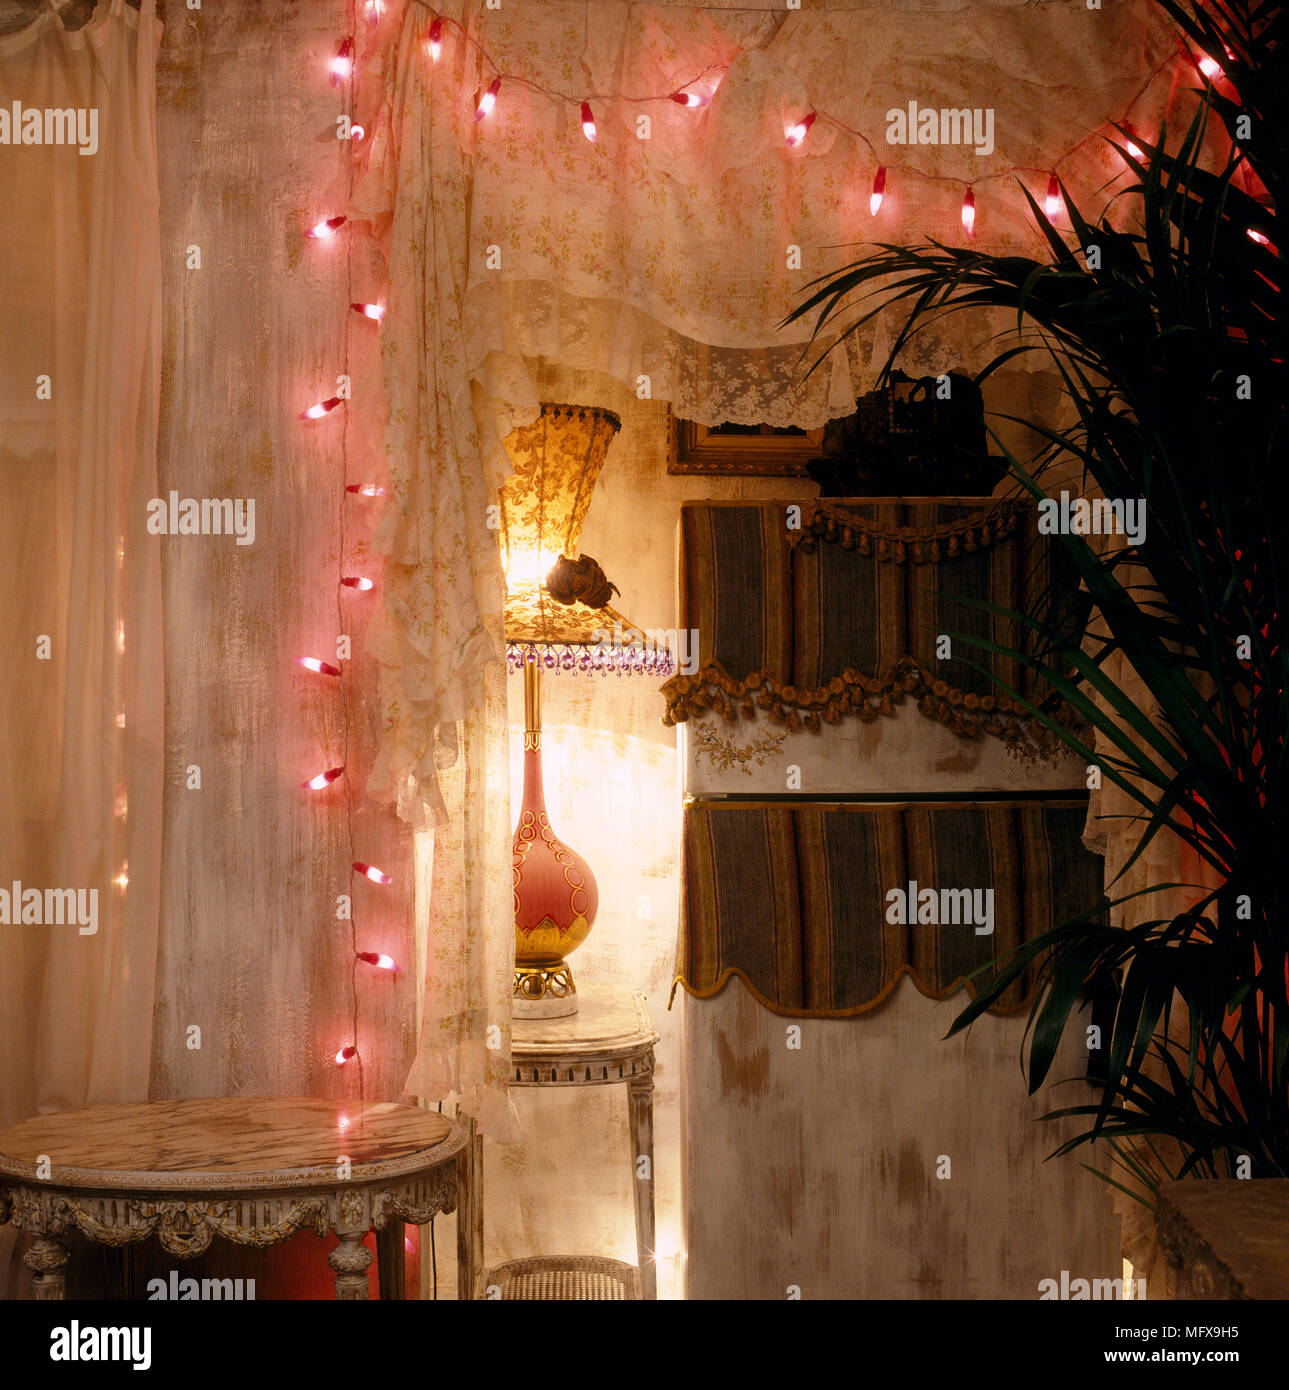 A Detail Of A Romantic Bedroom With Lit Fairy Lights Draped Around Lace  Curtains, Lit Lamp Giving A Subtle, Low Light Ambient